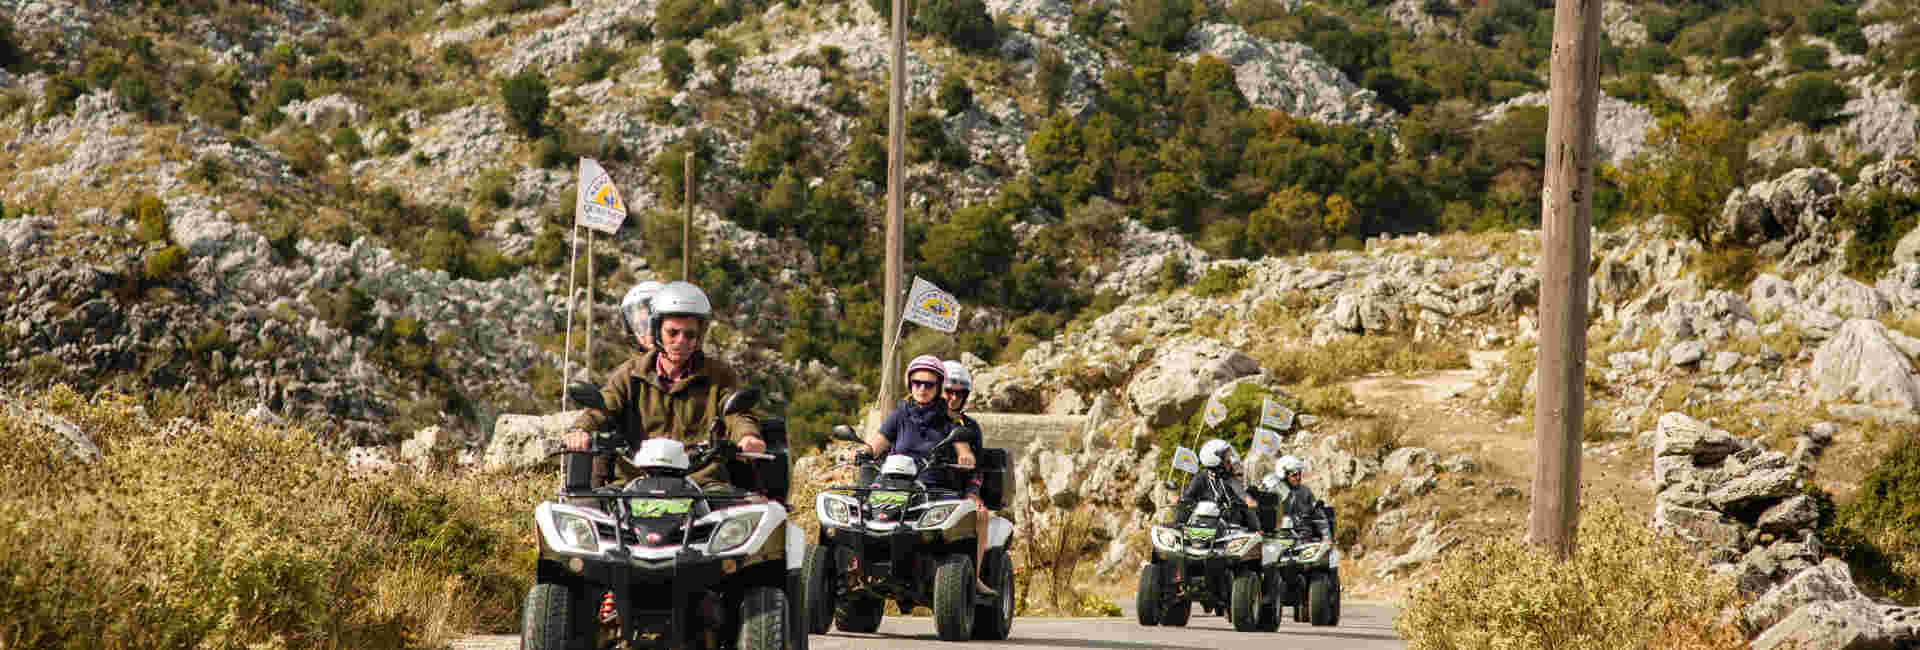 North Corfu Quad Safari by Corfu Sunriders